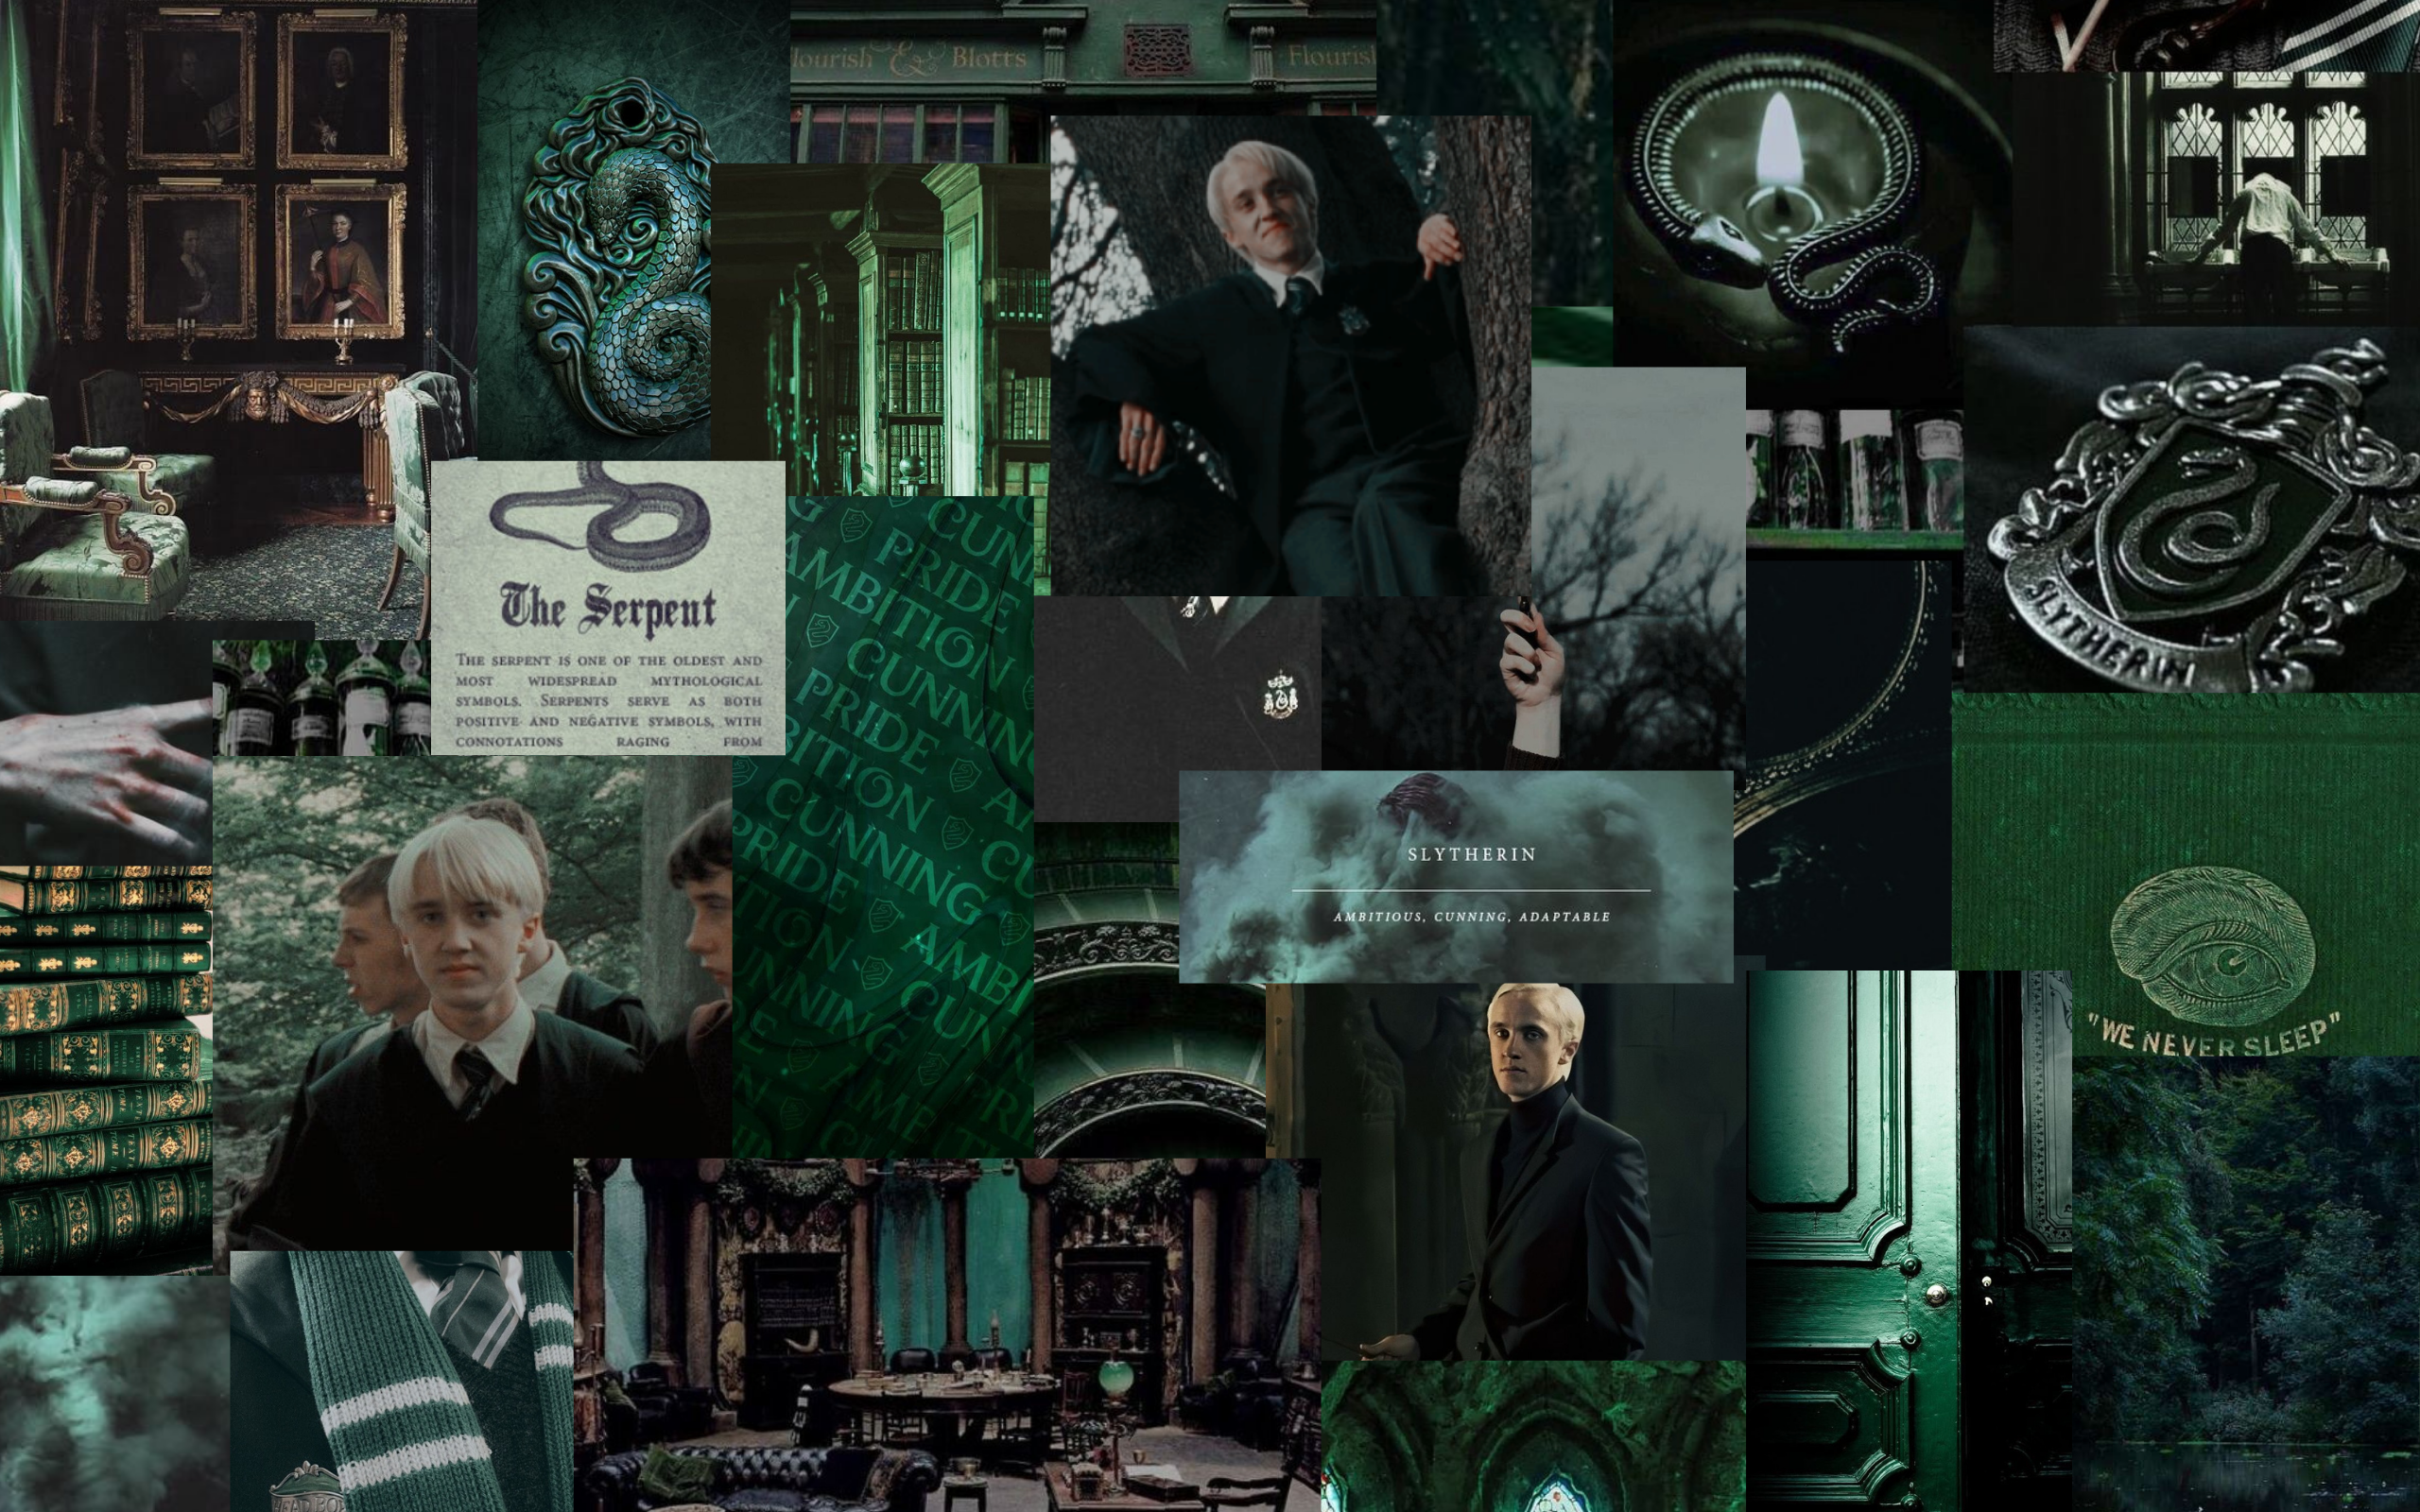 Draco Malfoy Aesthetic PC Wallpapers - Wallpaper Cave